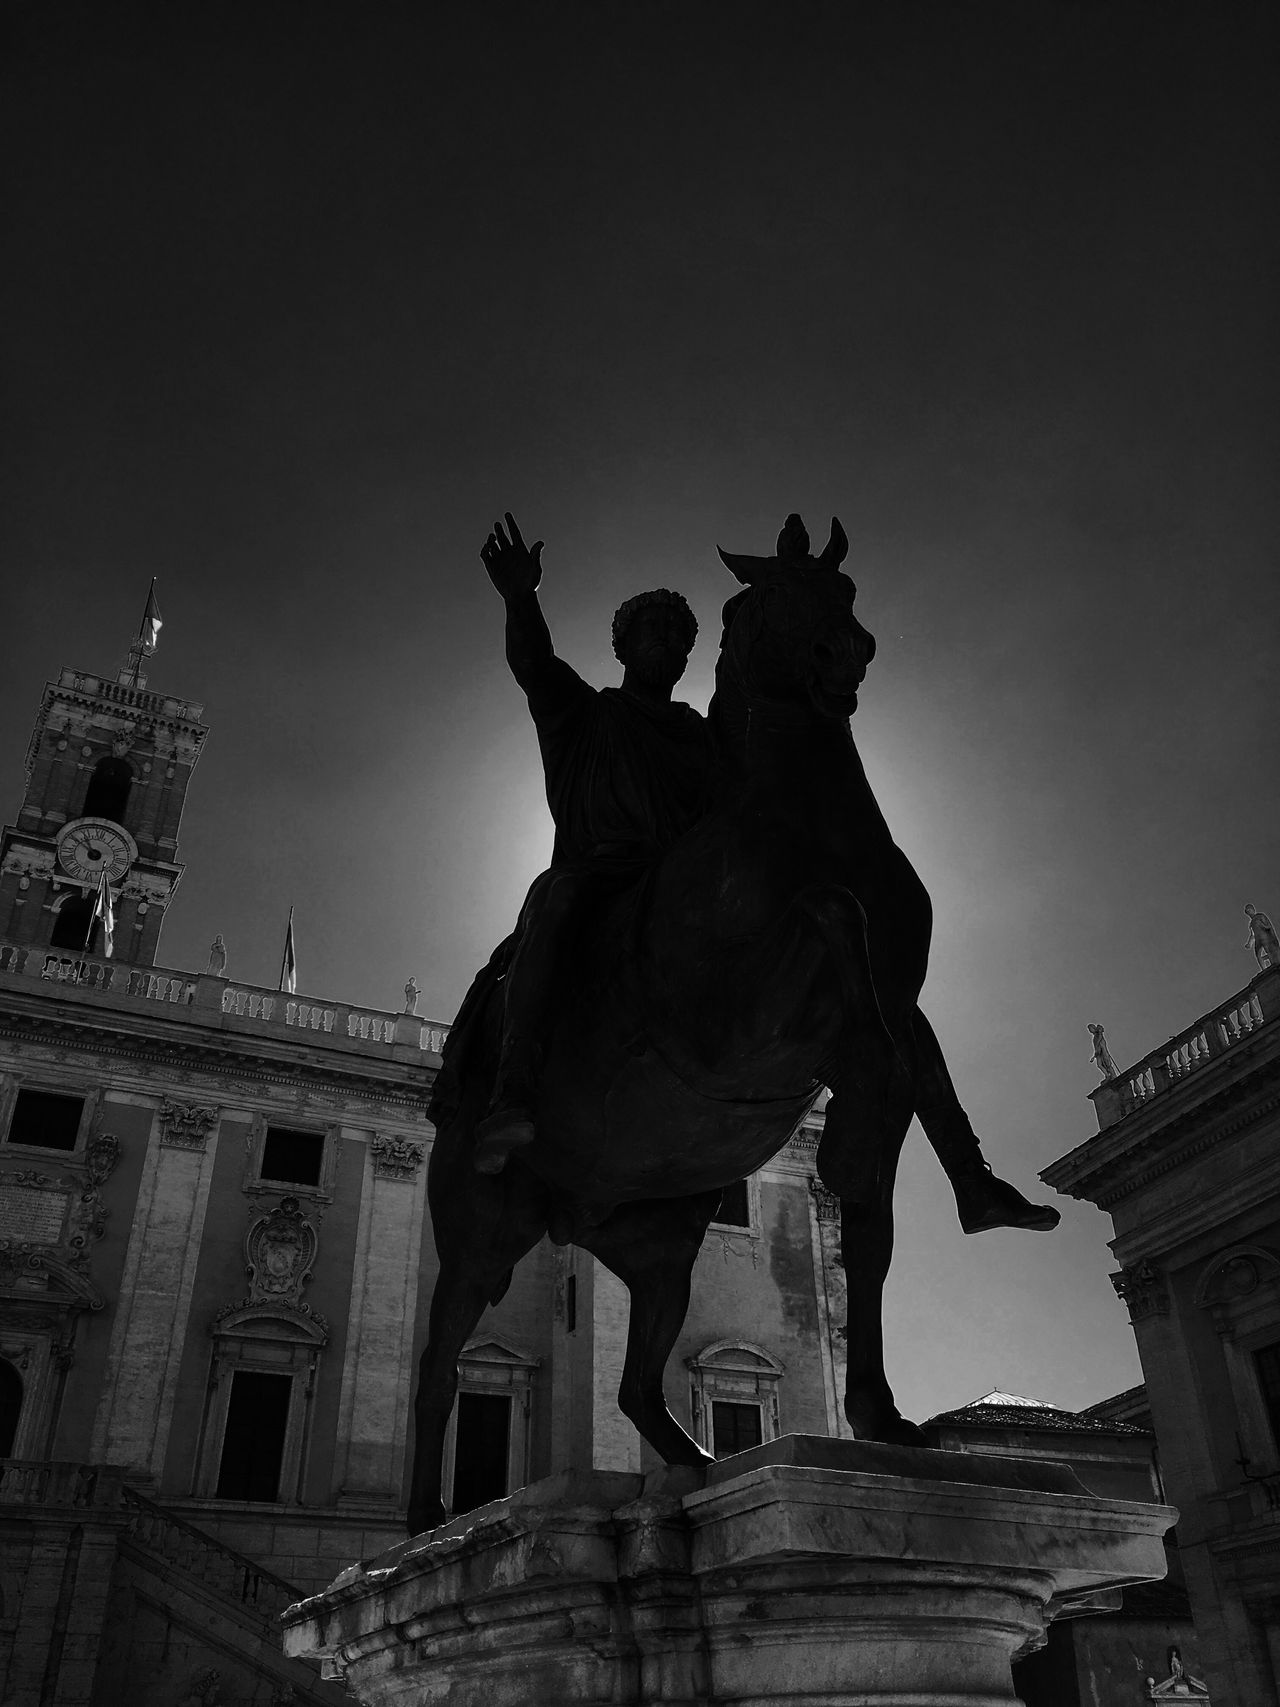 Statue Low Angle View Sculpture Architecture Built Structure Horse Human Representation Building Exterior Sky History Outdoors Travel Destinations No People Day City Rome Italy The Architect - 2017 EyeEm Awards